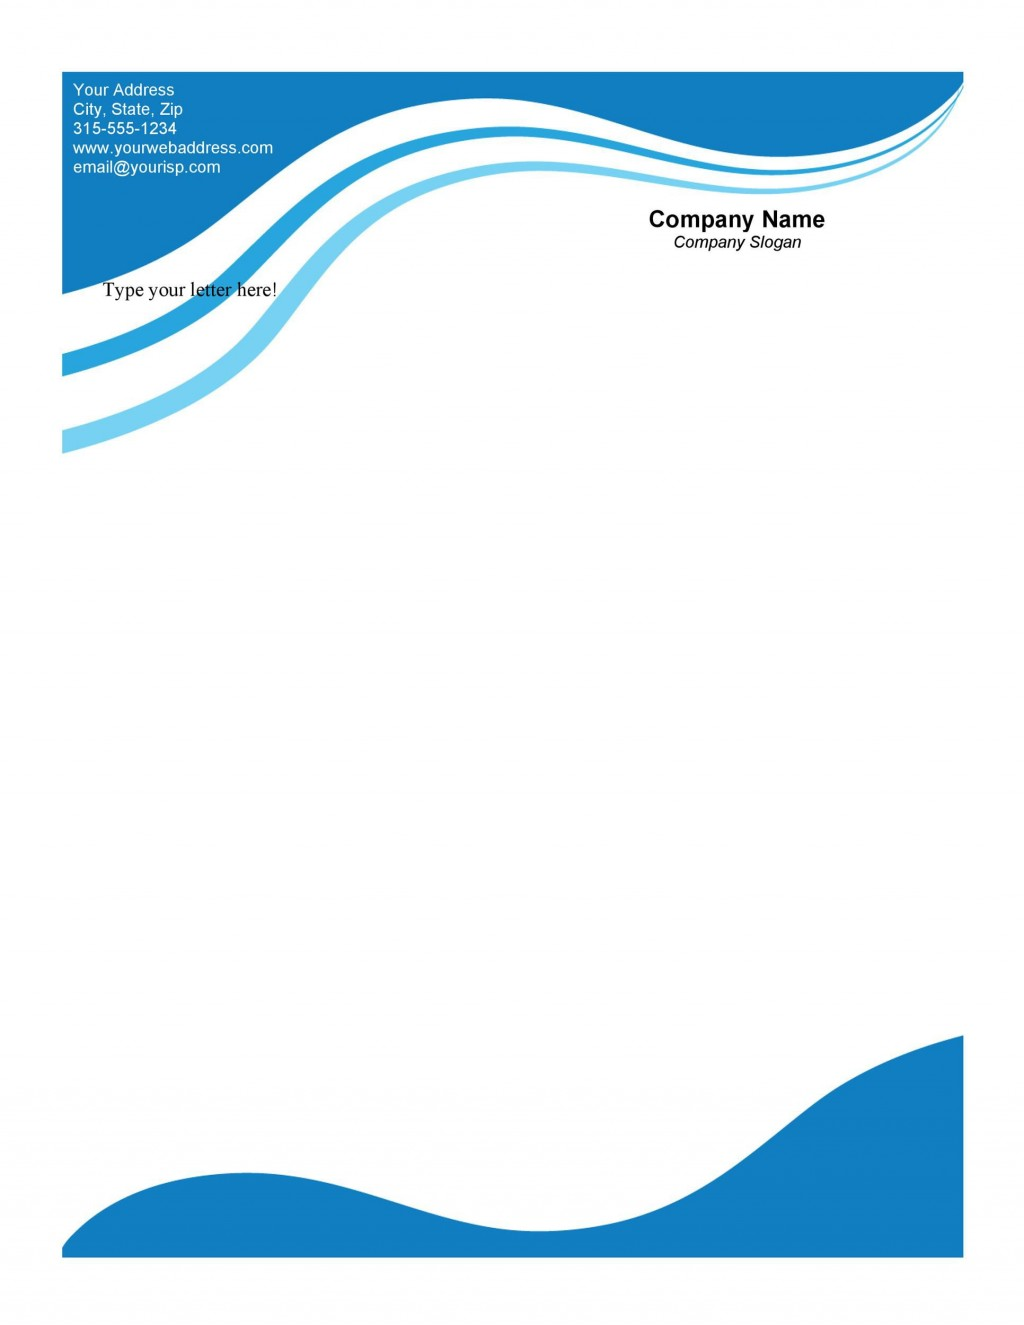 007 Unusual Free Company Letterhead Template Idea  Online Psd Download Word 2007Large